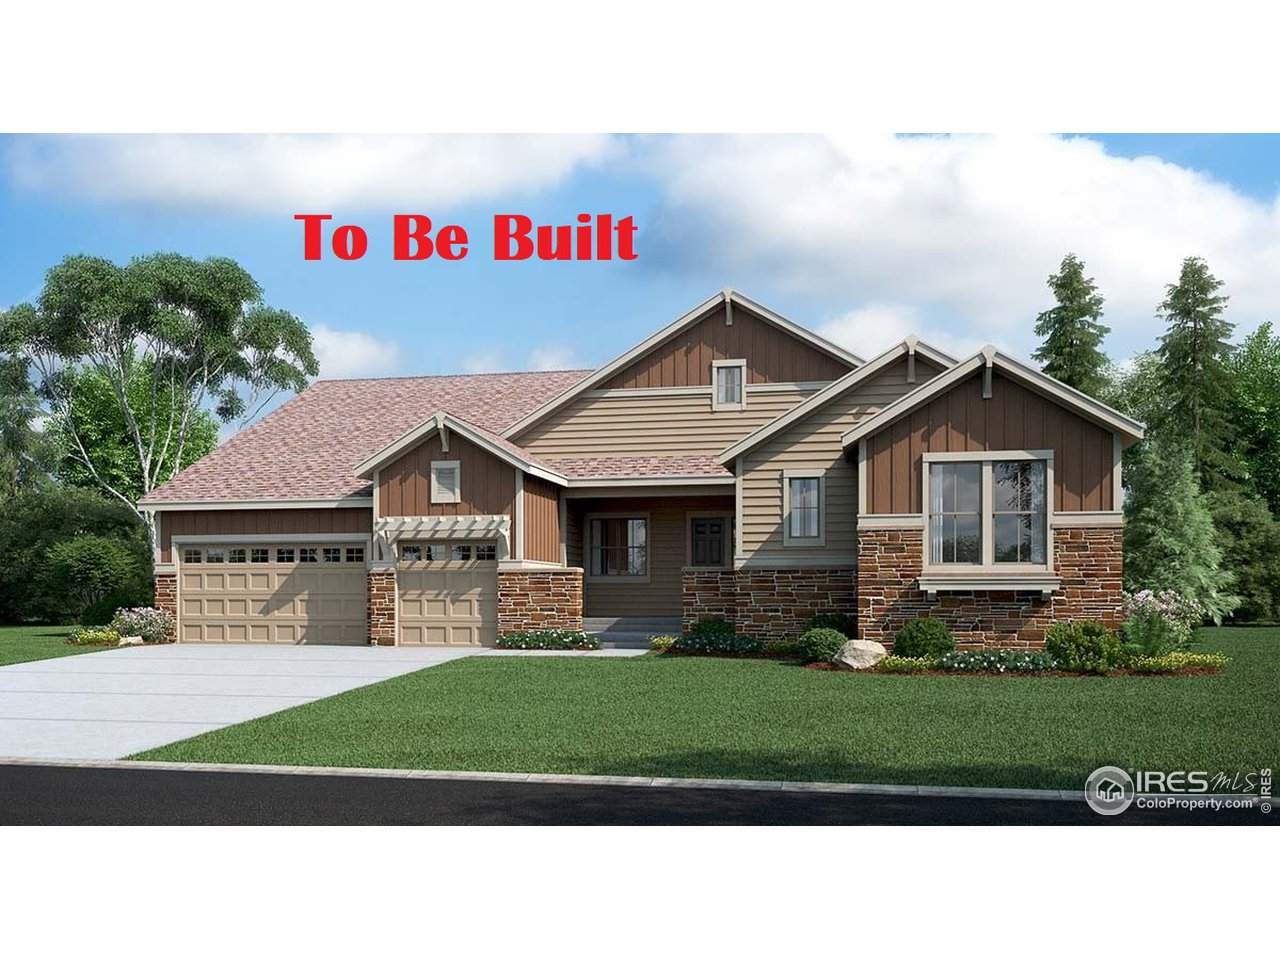 Rendering. Not actual home. To be built July.